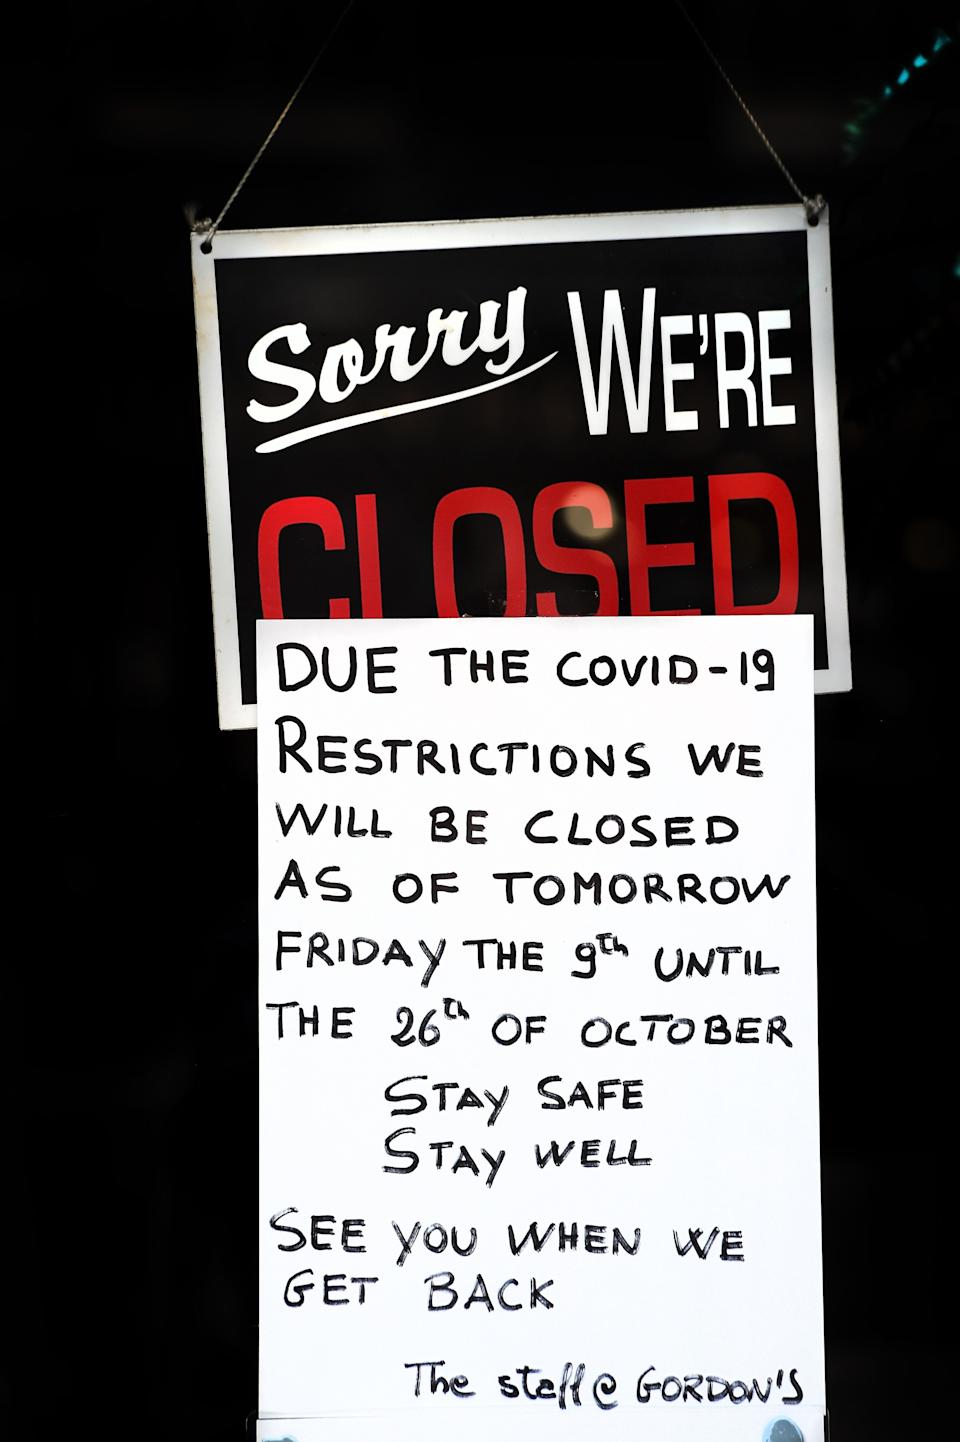 A sign explaining their temporary closure is seen on the door of a restaurant in Edinburgh on October 9, 2020, as new restrictions come into force to combat the spread of coronavirus covid-19. - Scotland has ordered a two-week closure of pubs in the central part of the country including the main cities Glasgow and Edinburgh, as ministers try to curb a rise in coronavirus cases. (Photo by ANDY BUCHANAN / AFP) (Photo by ANDY BUCHANAN/AFP via Getty Images)